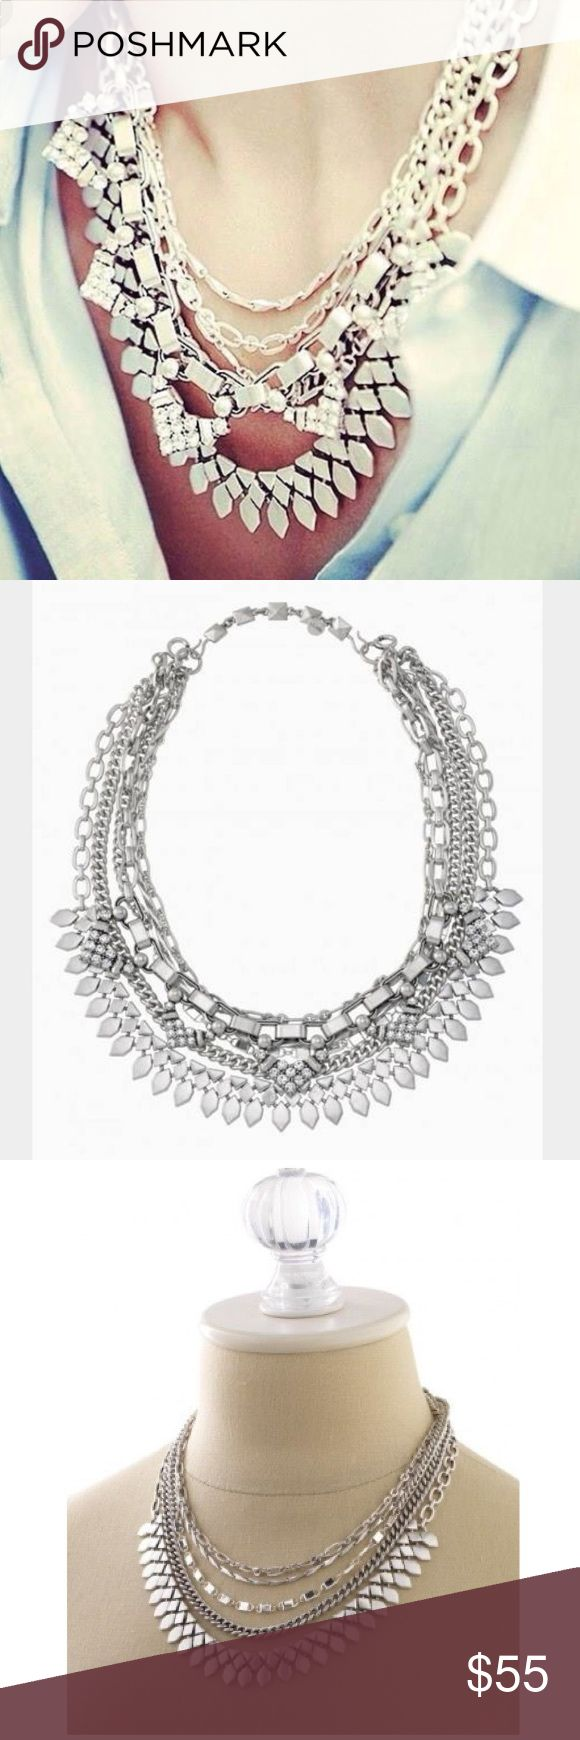 "Stella & Dot Sutton Necklace - Silver 5-in-1 statement necklace compliments any outfit! Wear it long and loose for a laid-back look, clasped into a statement when you're feeling bold, plus or minus the sparkle strand, or just the sparkle when you're in the mood to shine. Mix of vintage and shiny silver plating.  15"" with 3"" extender for shortest necklace. 31.5""longest Stella & Dot Jewelry Necklaces"